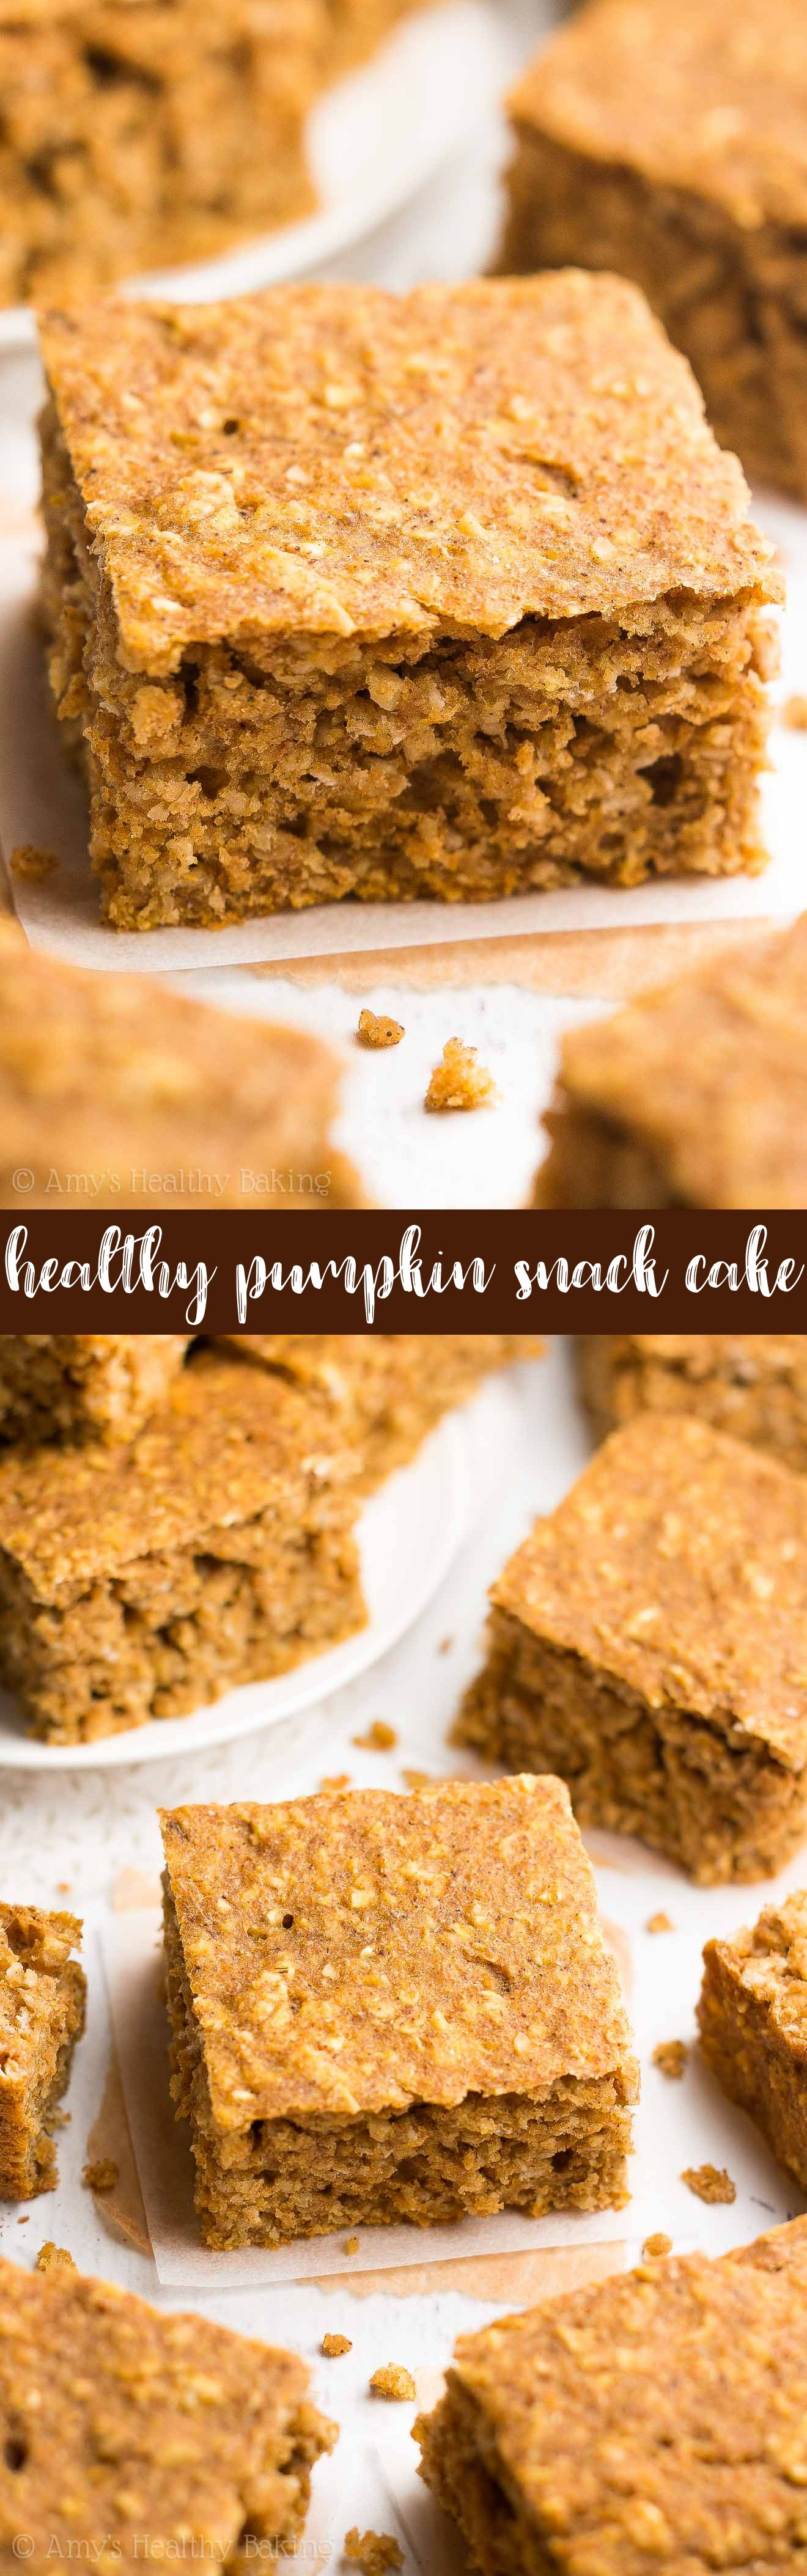 {HEALTHY!} Pumpkin Oatmeal Snack Cake -- only 99 calories! It tastes like pumpkin pie & is SO easy to make! (No mixer required!) Totally kid approved too! #recipe